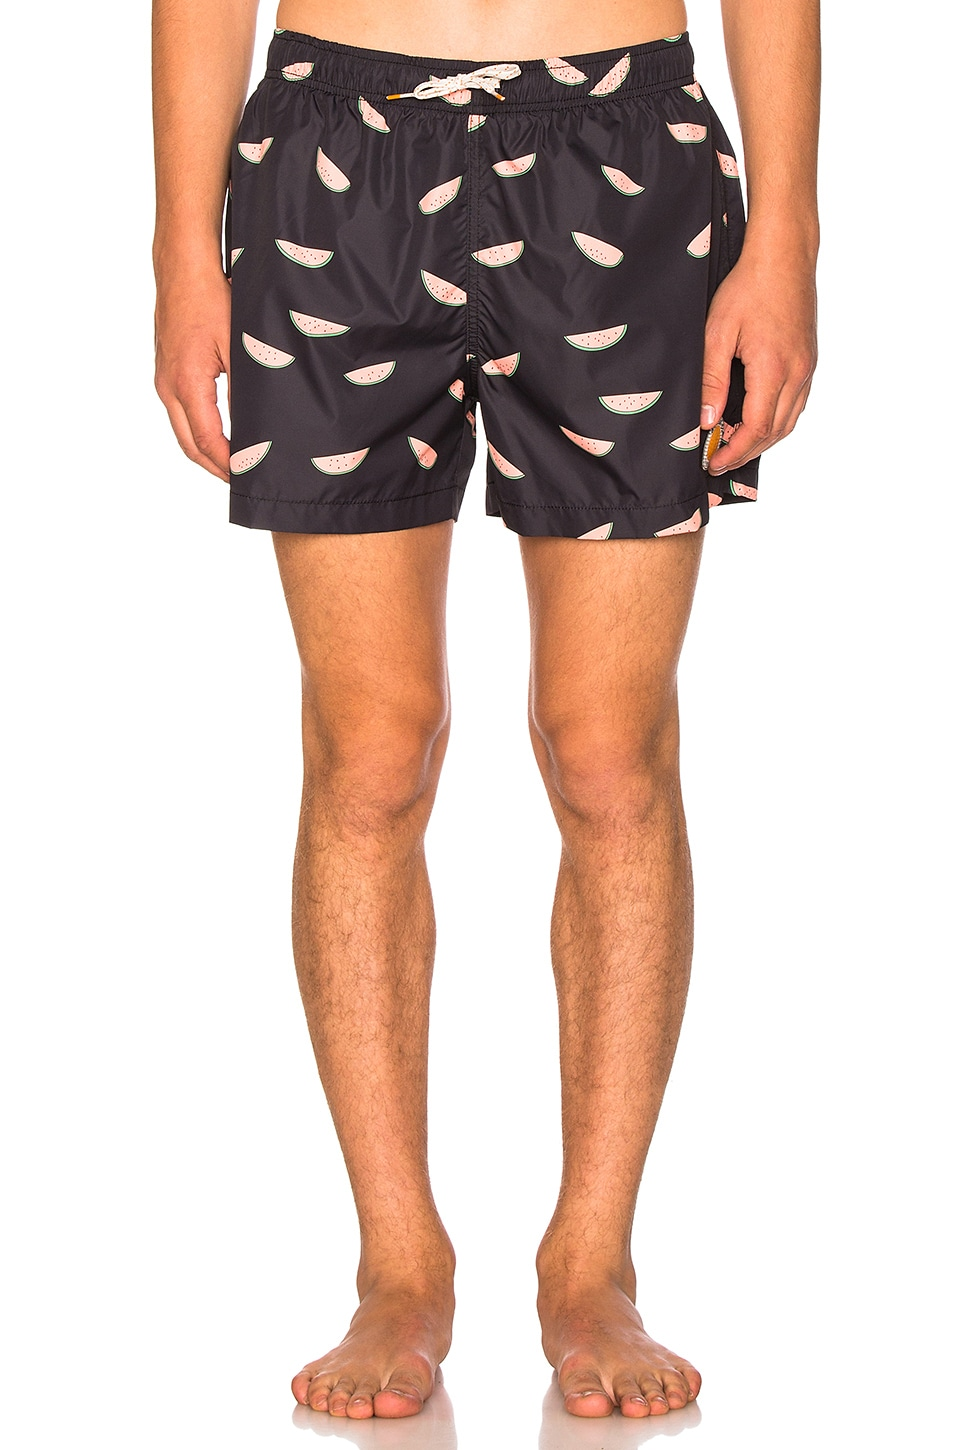 Melon Packable Shorts by Ambsn